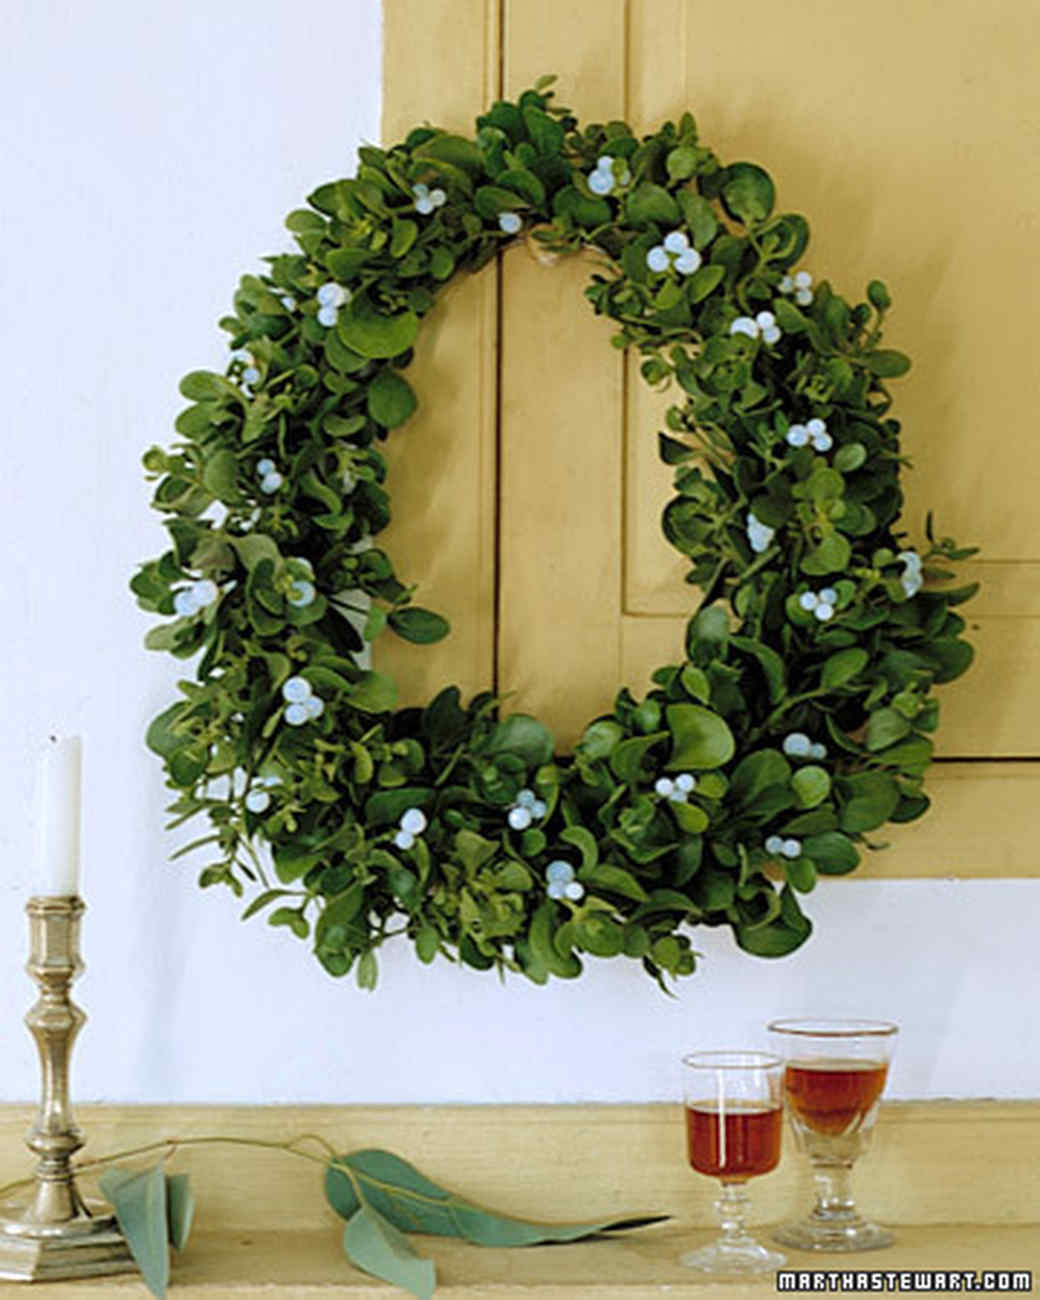 How to Make a Wreath | Martha Stewart